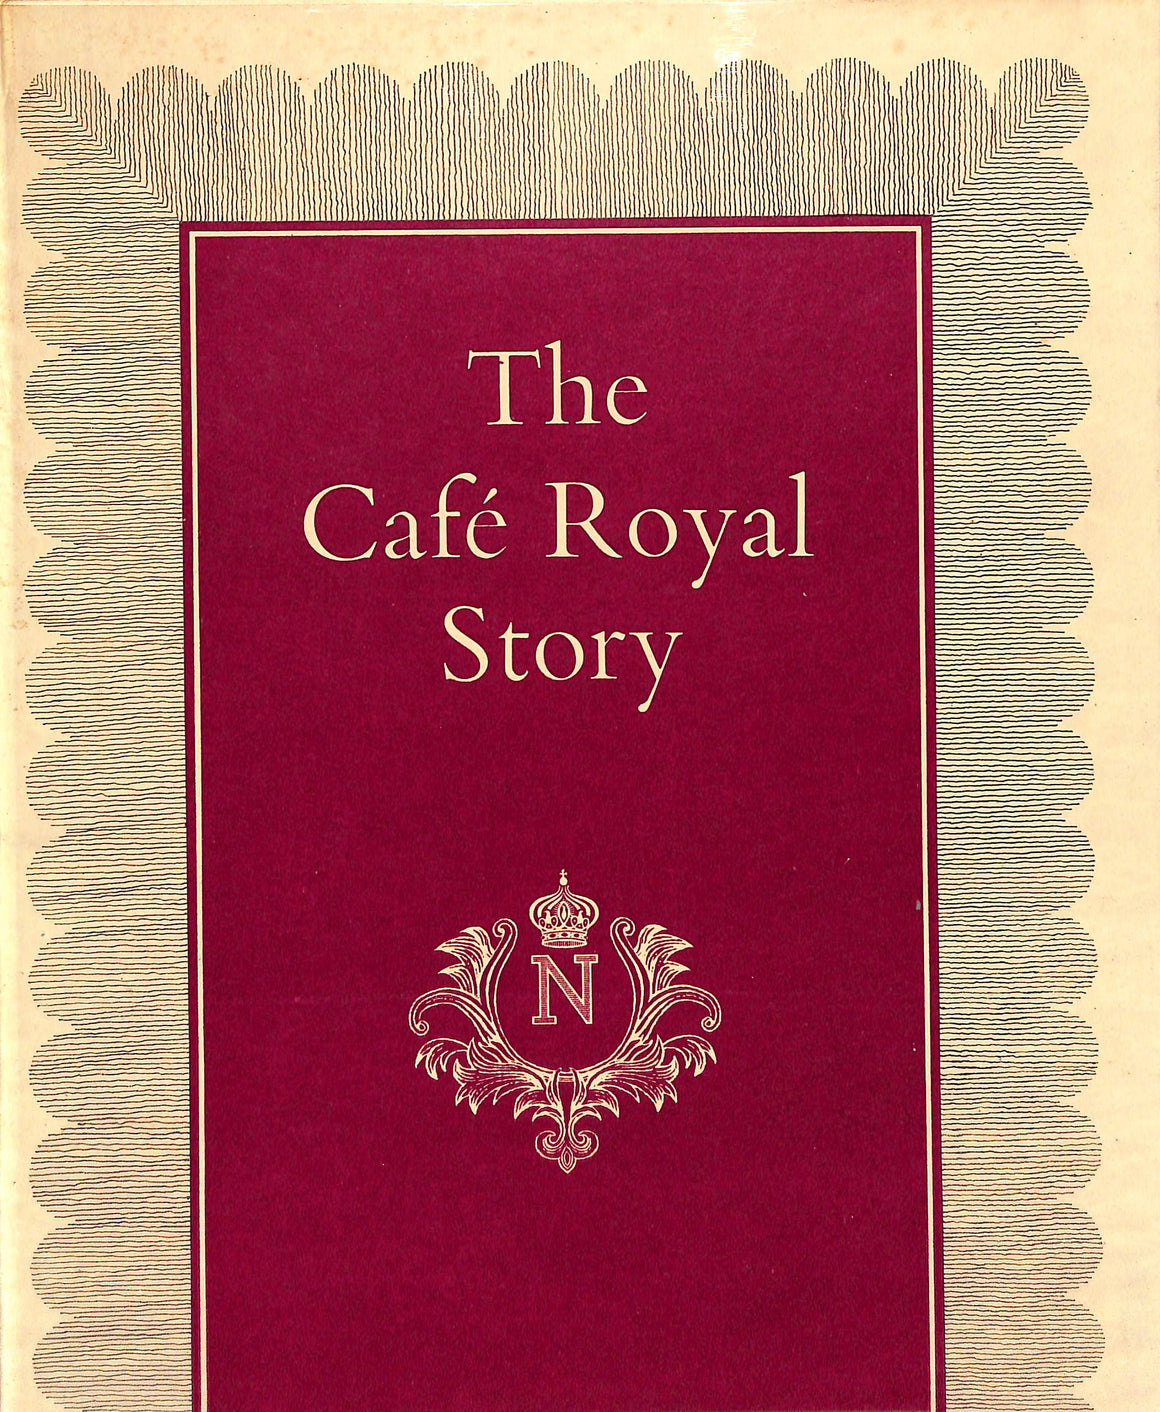 The Cafe Royal Story